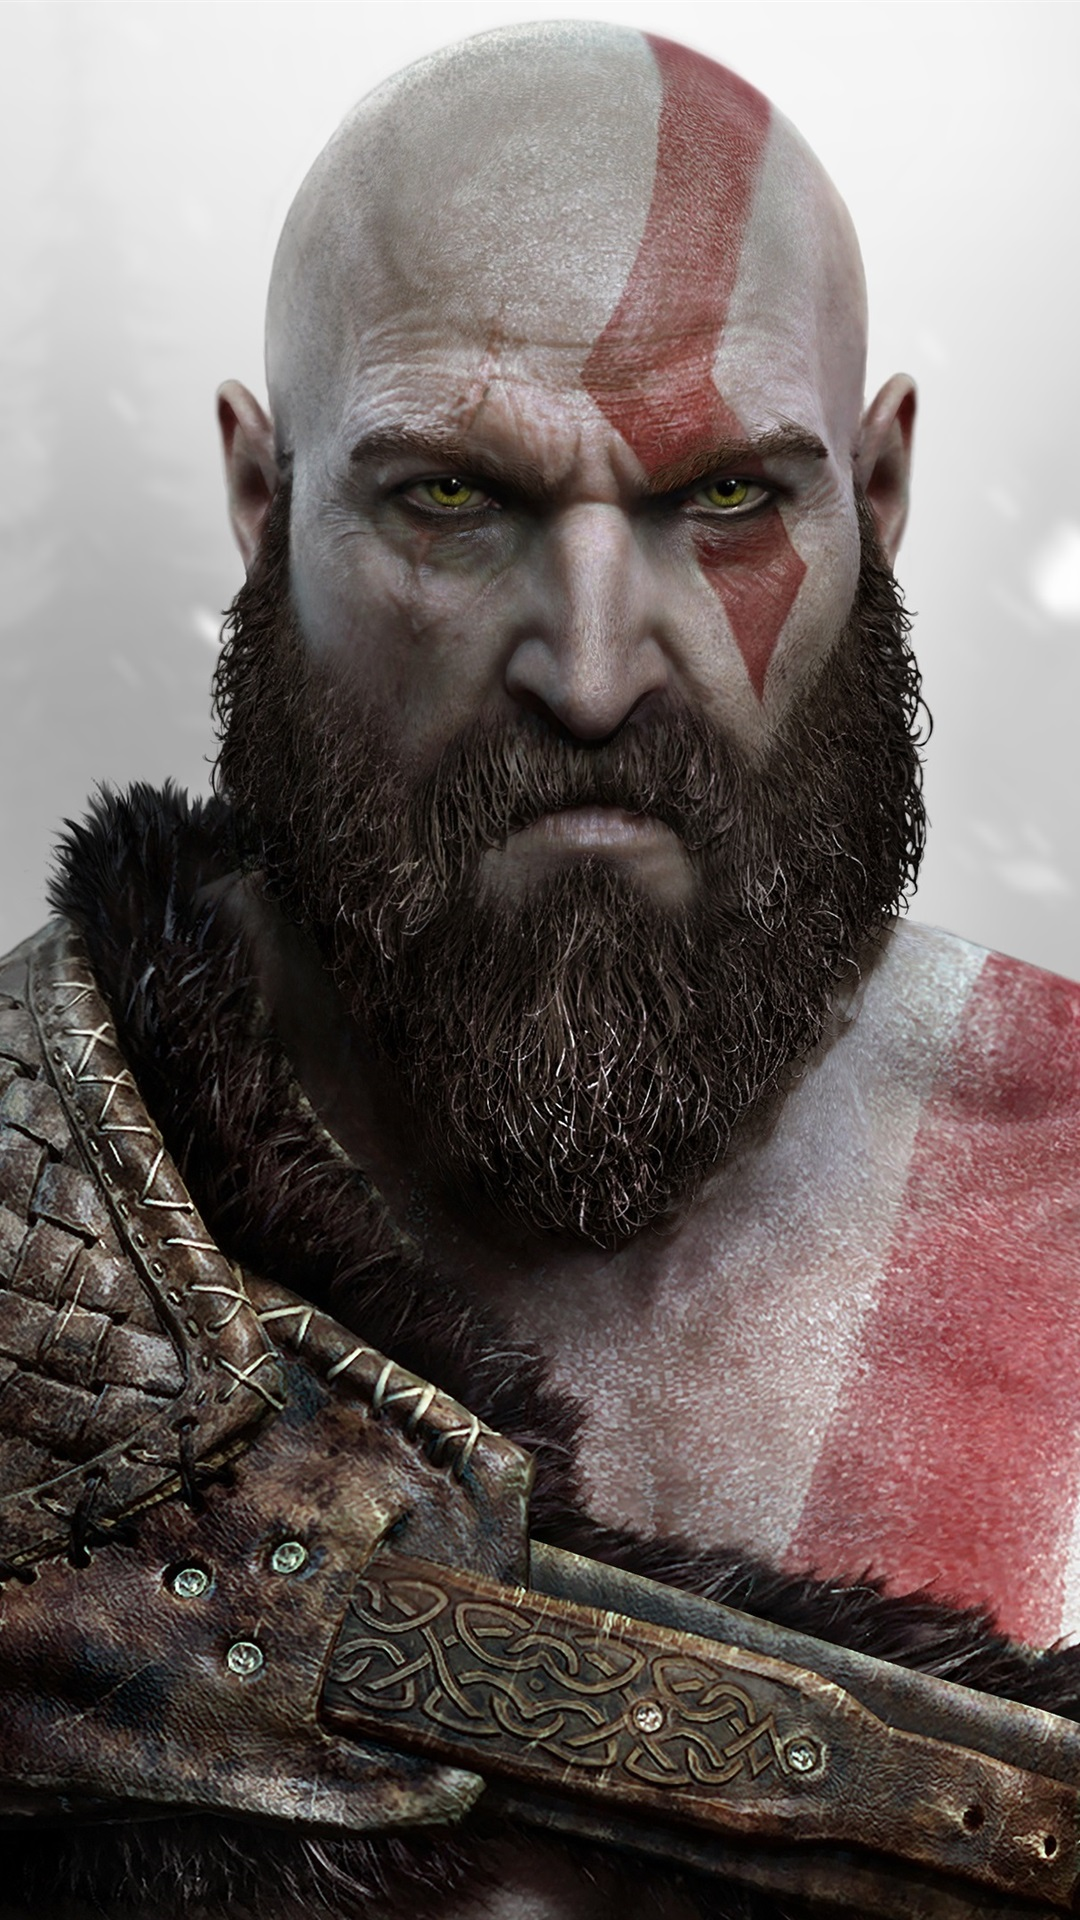 God Of War Sony Ps4 Game 1080x1920 Iphone 8 7 6 6s Plus Wallpaper